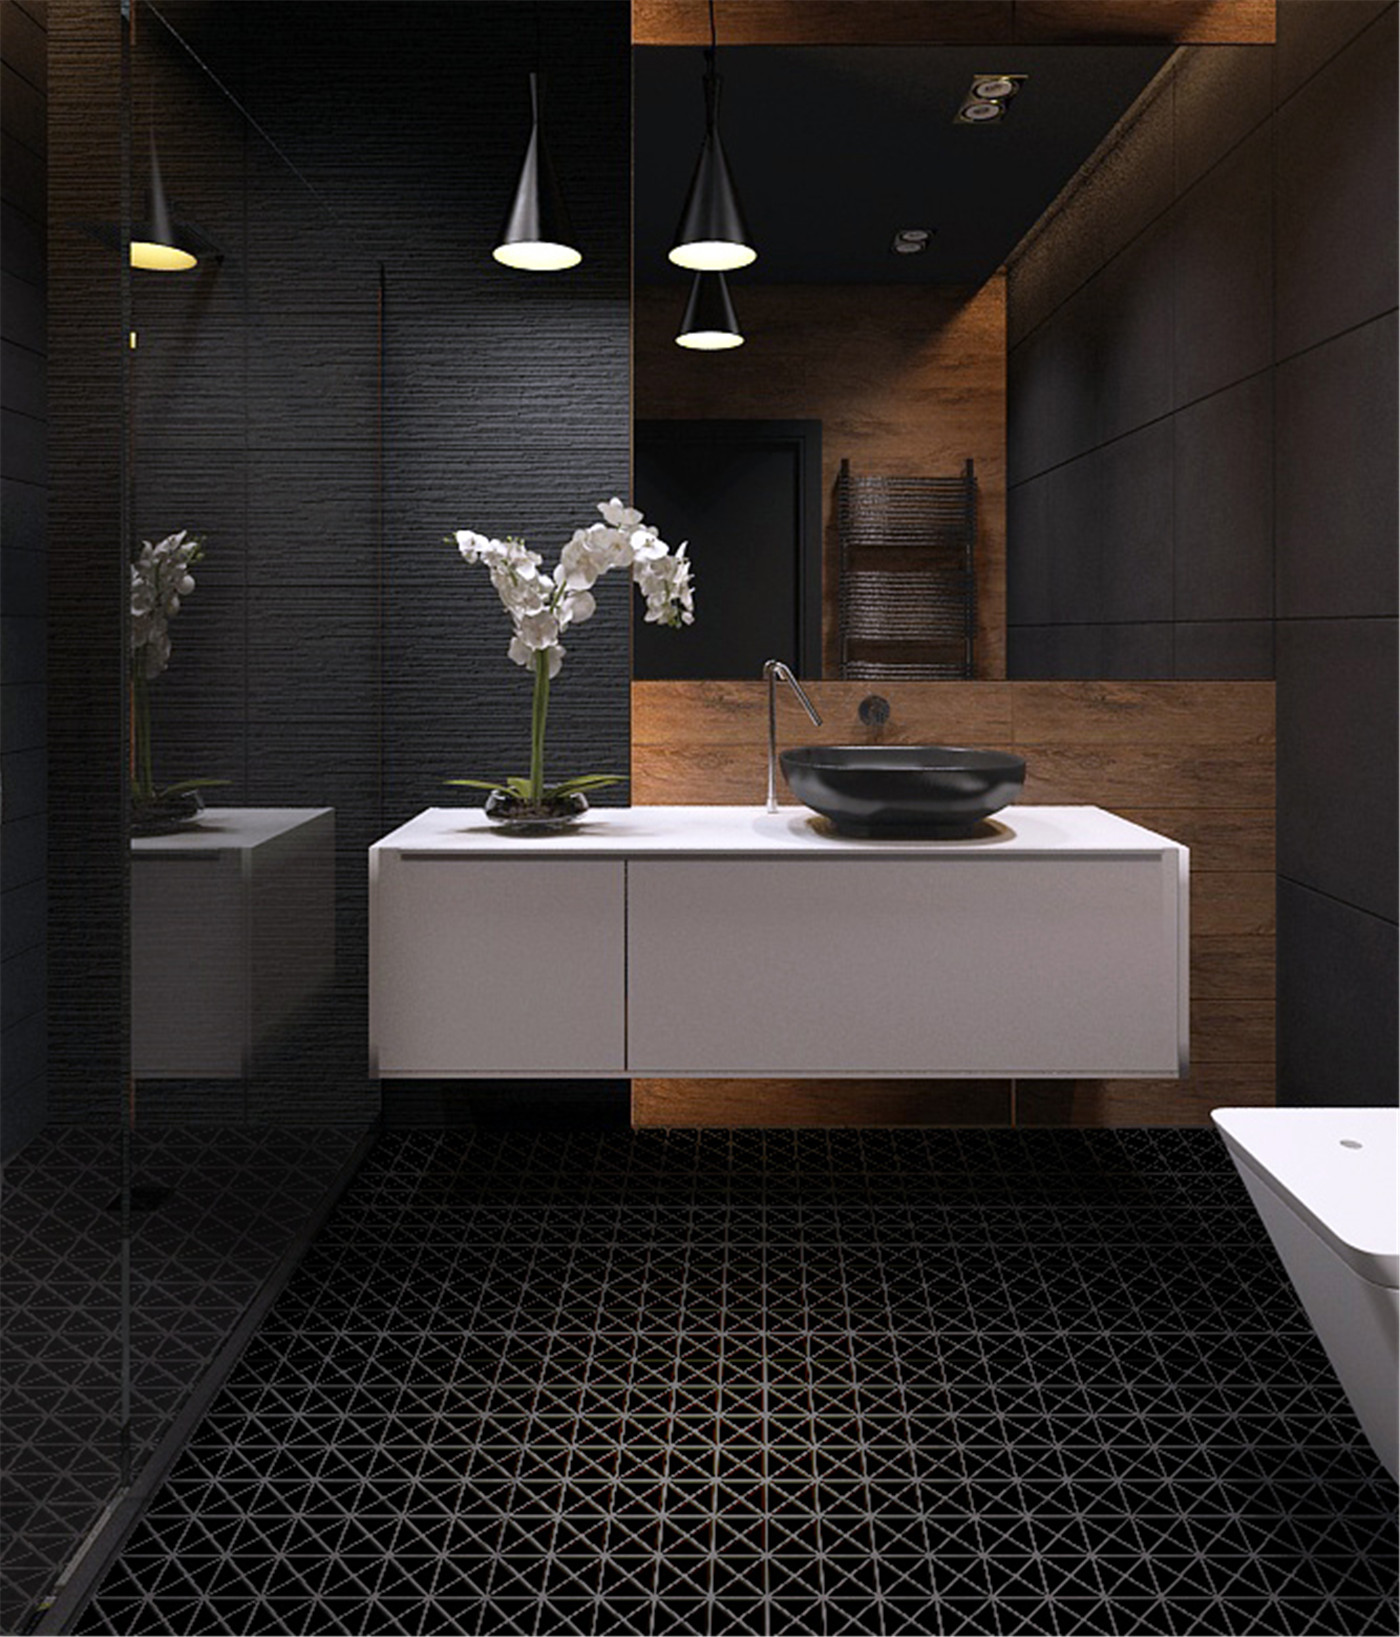 Black Tiled Bathroom 2 39 39 Pure Black Matte Porcelain Triangle Mosaic Floor Tile